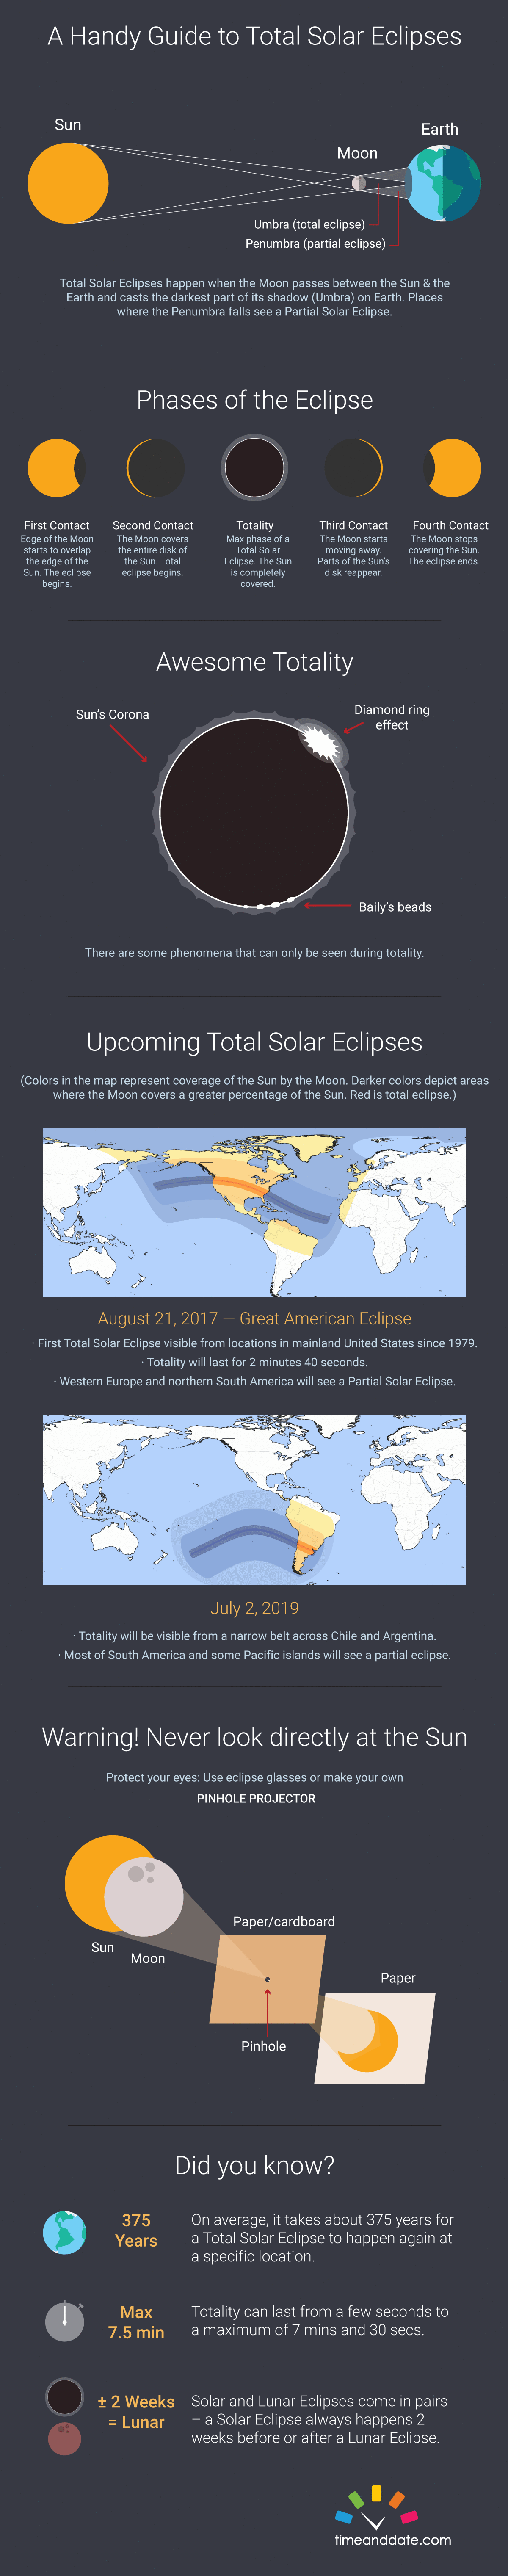 Total Solar Eclipse Infographic - Total eclipse us coverage map